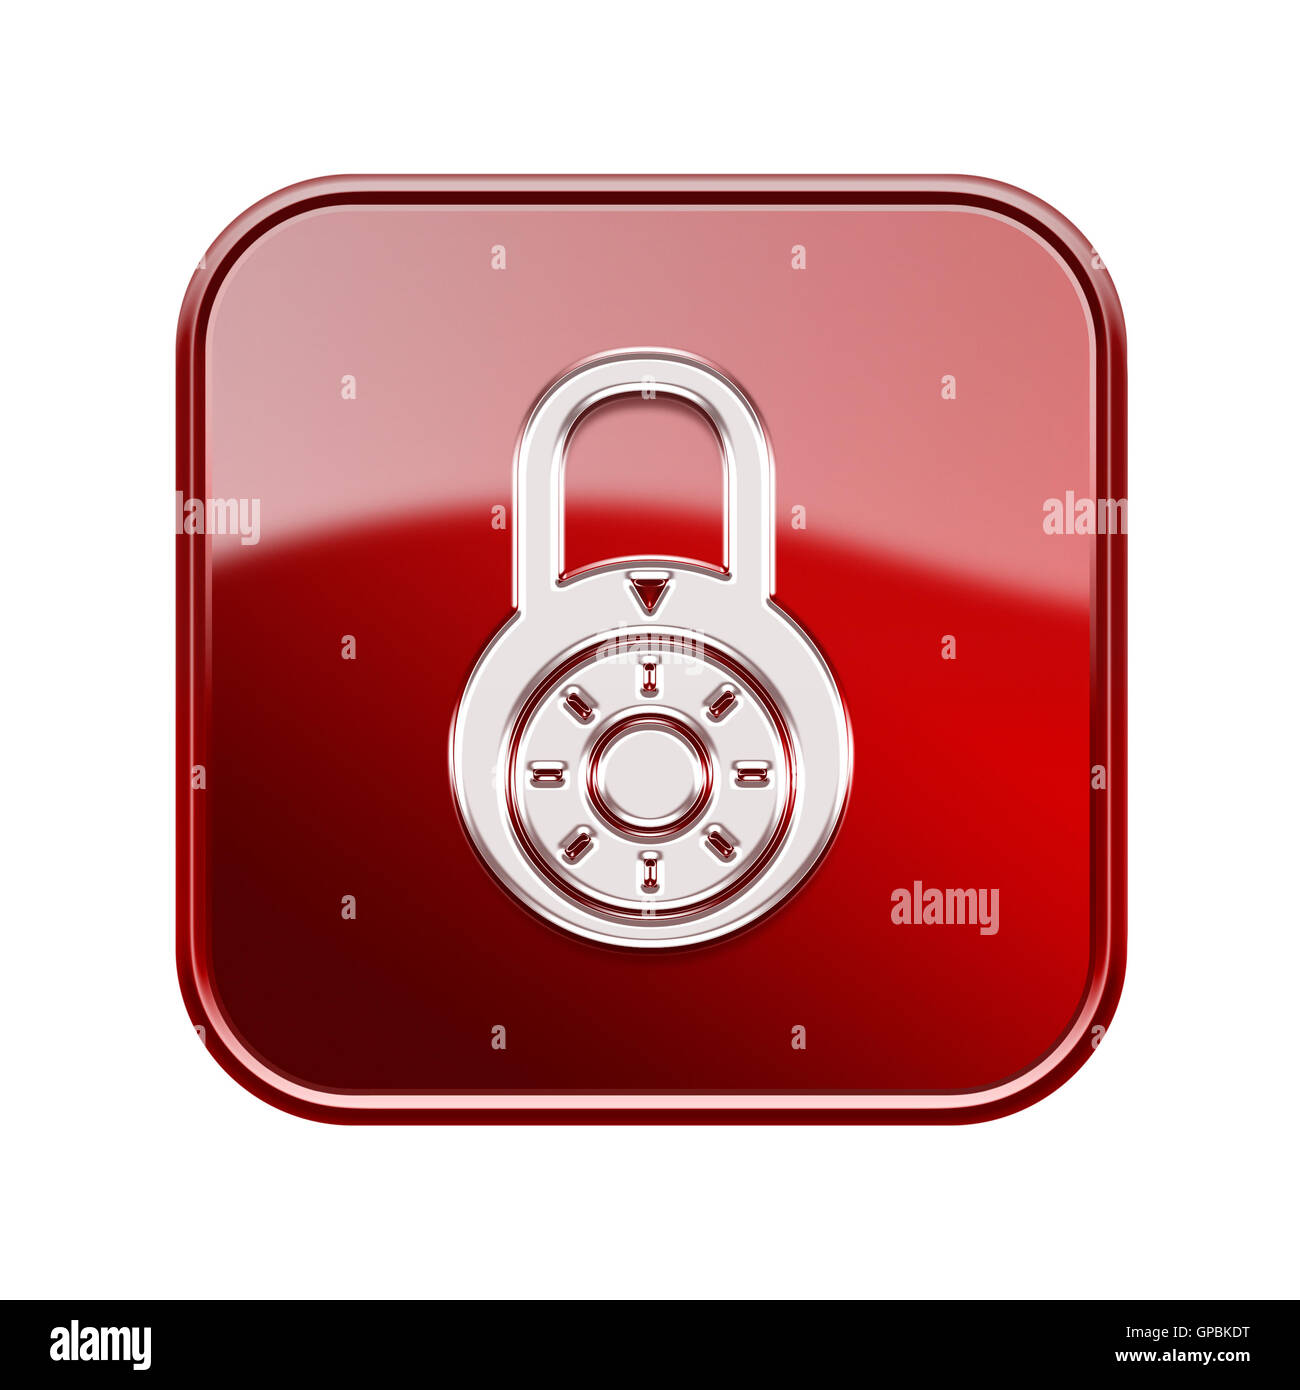 Lock off icon glossy red, isolated on white background. - Stock Image